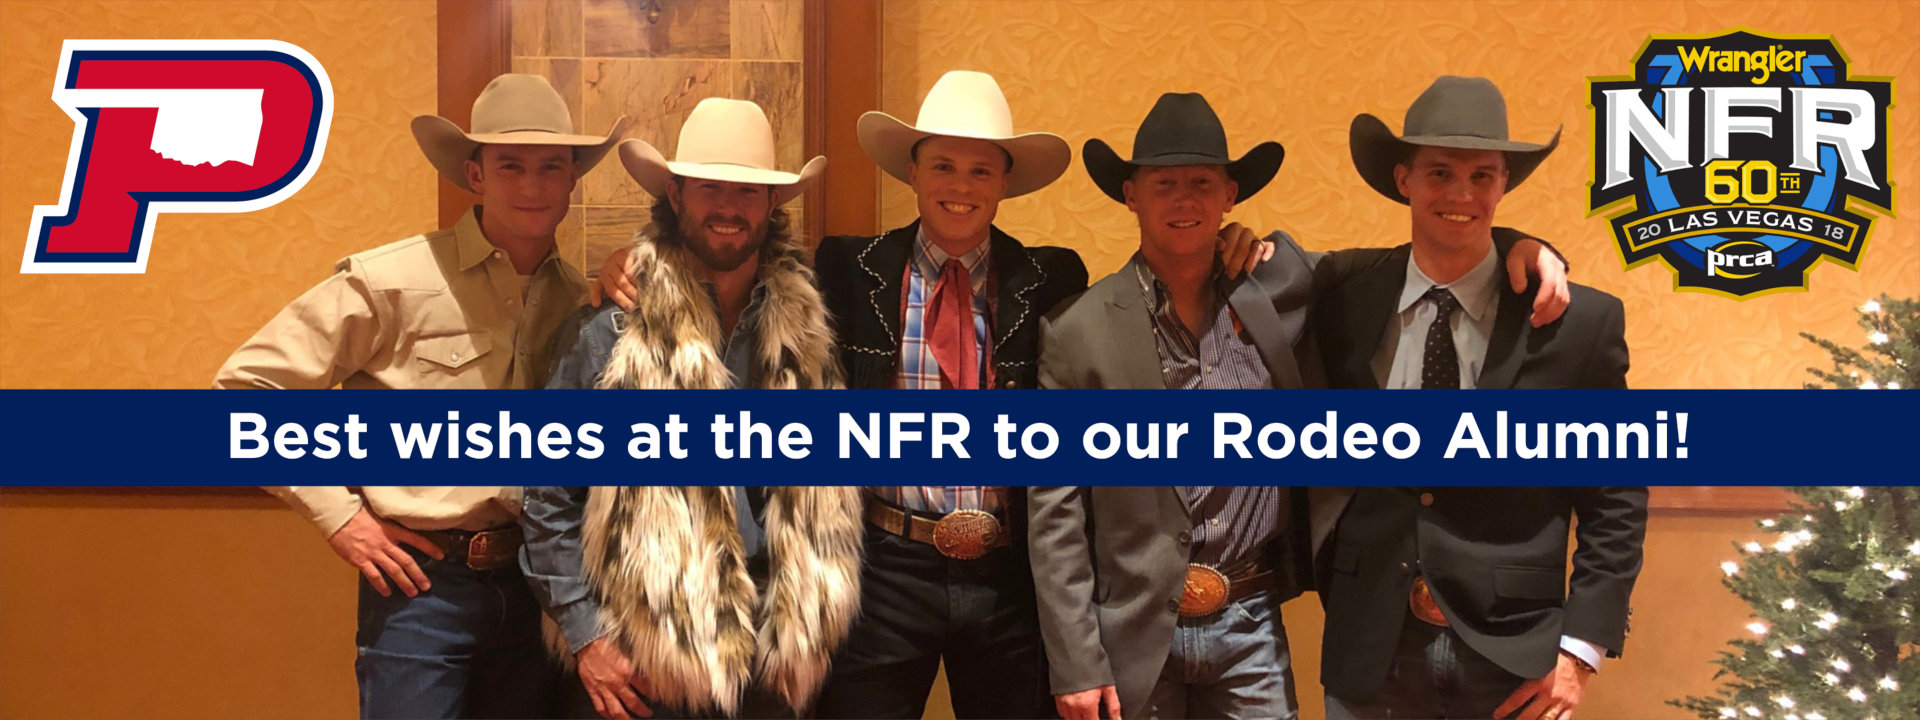 Best Wishes at the NFR to our Rodeo Alumni